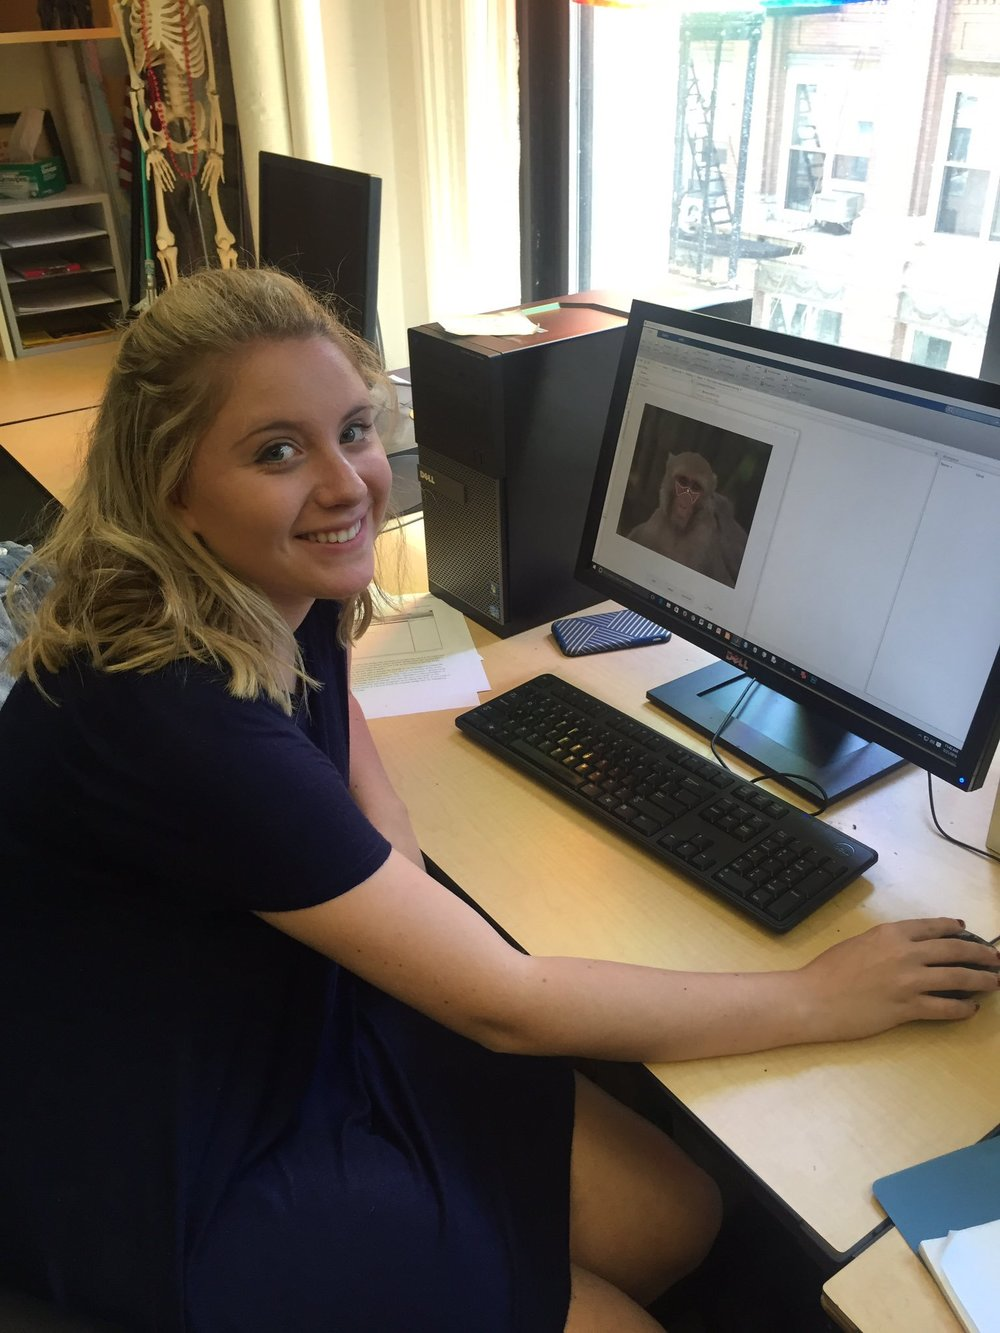 Flavia (undergraduate intern) measuring images of rhesus macaque faces.